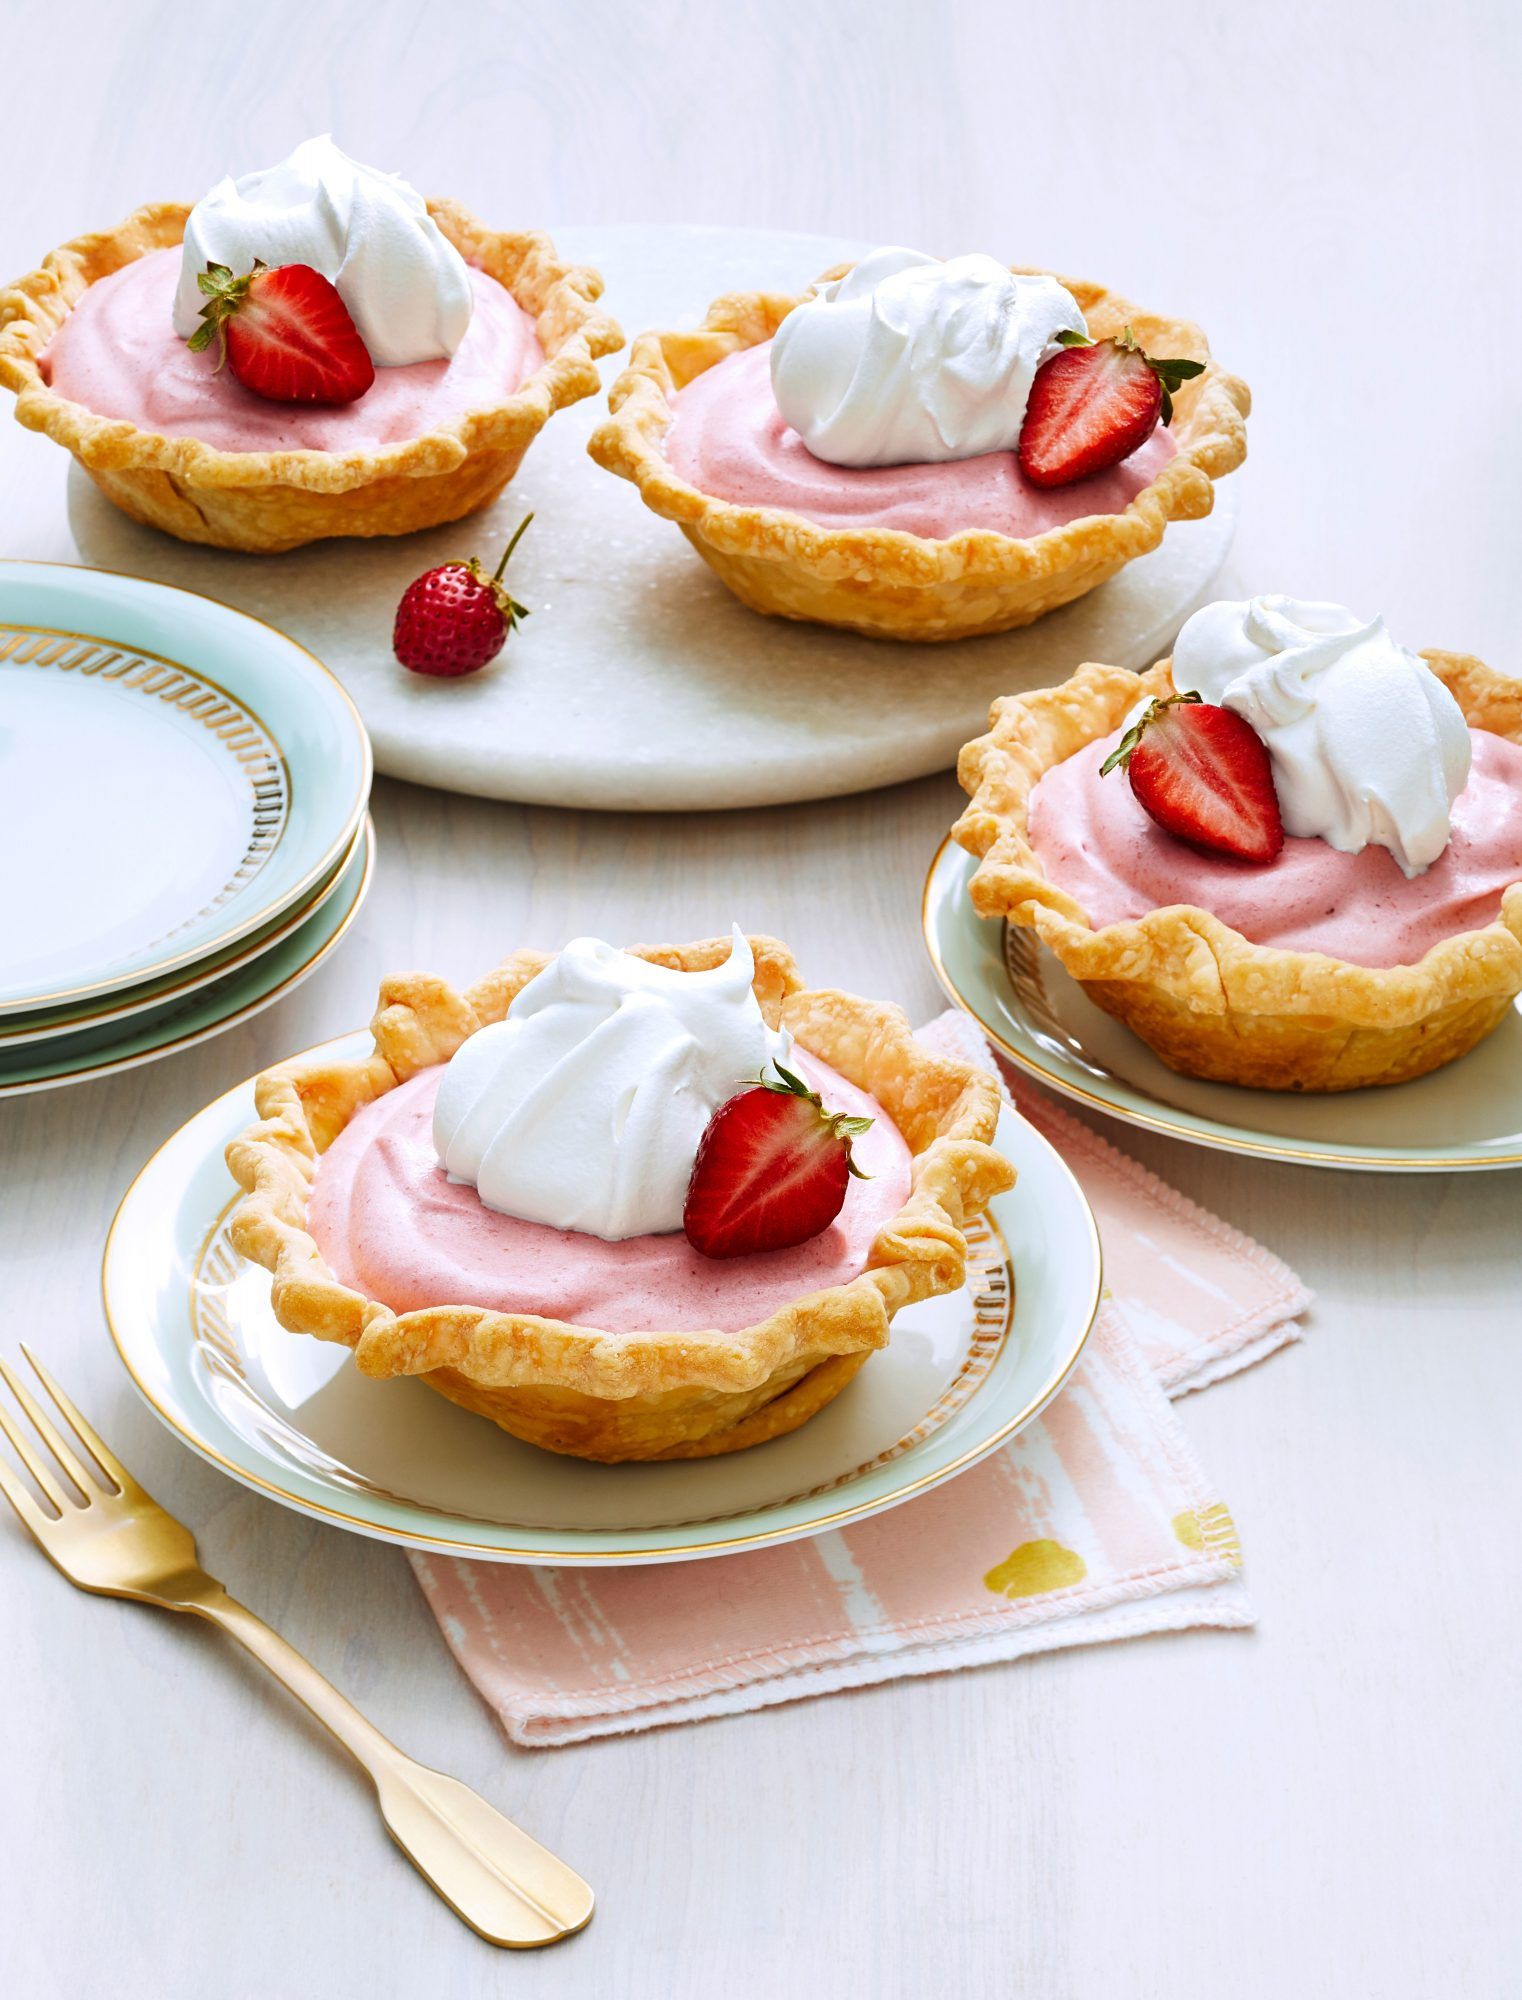 February: Mini Strawberry Chiffon Pies